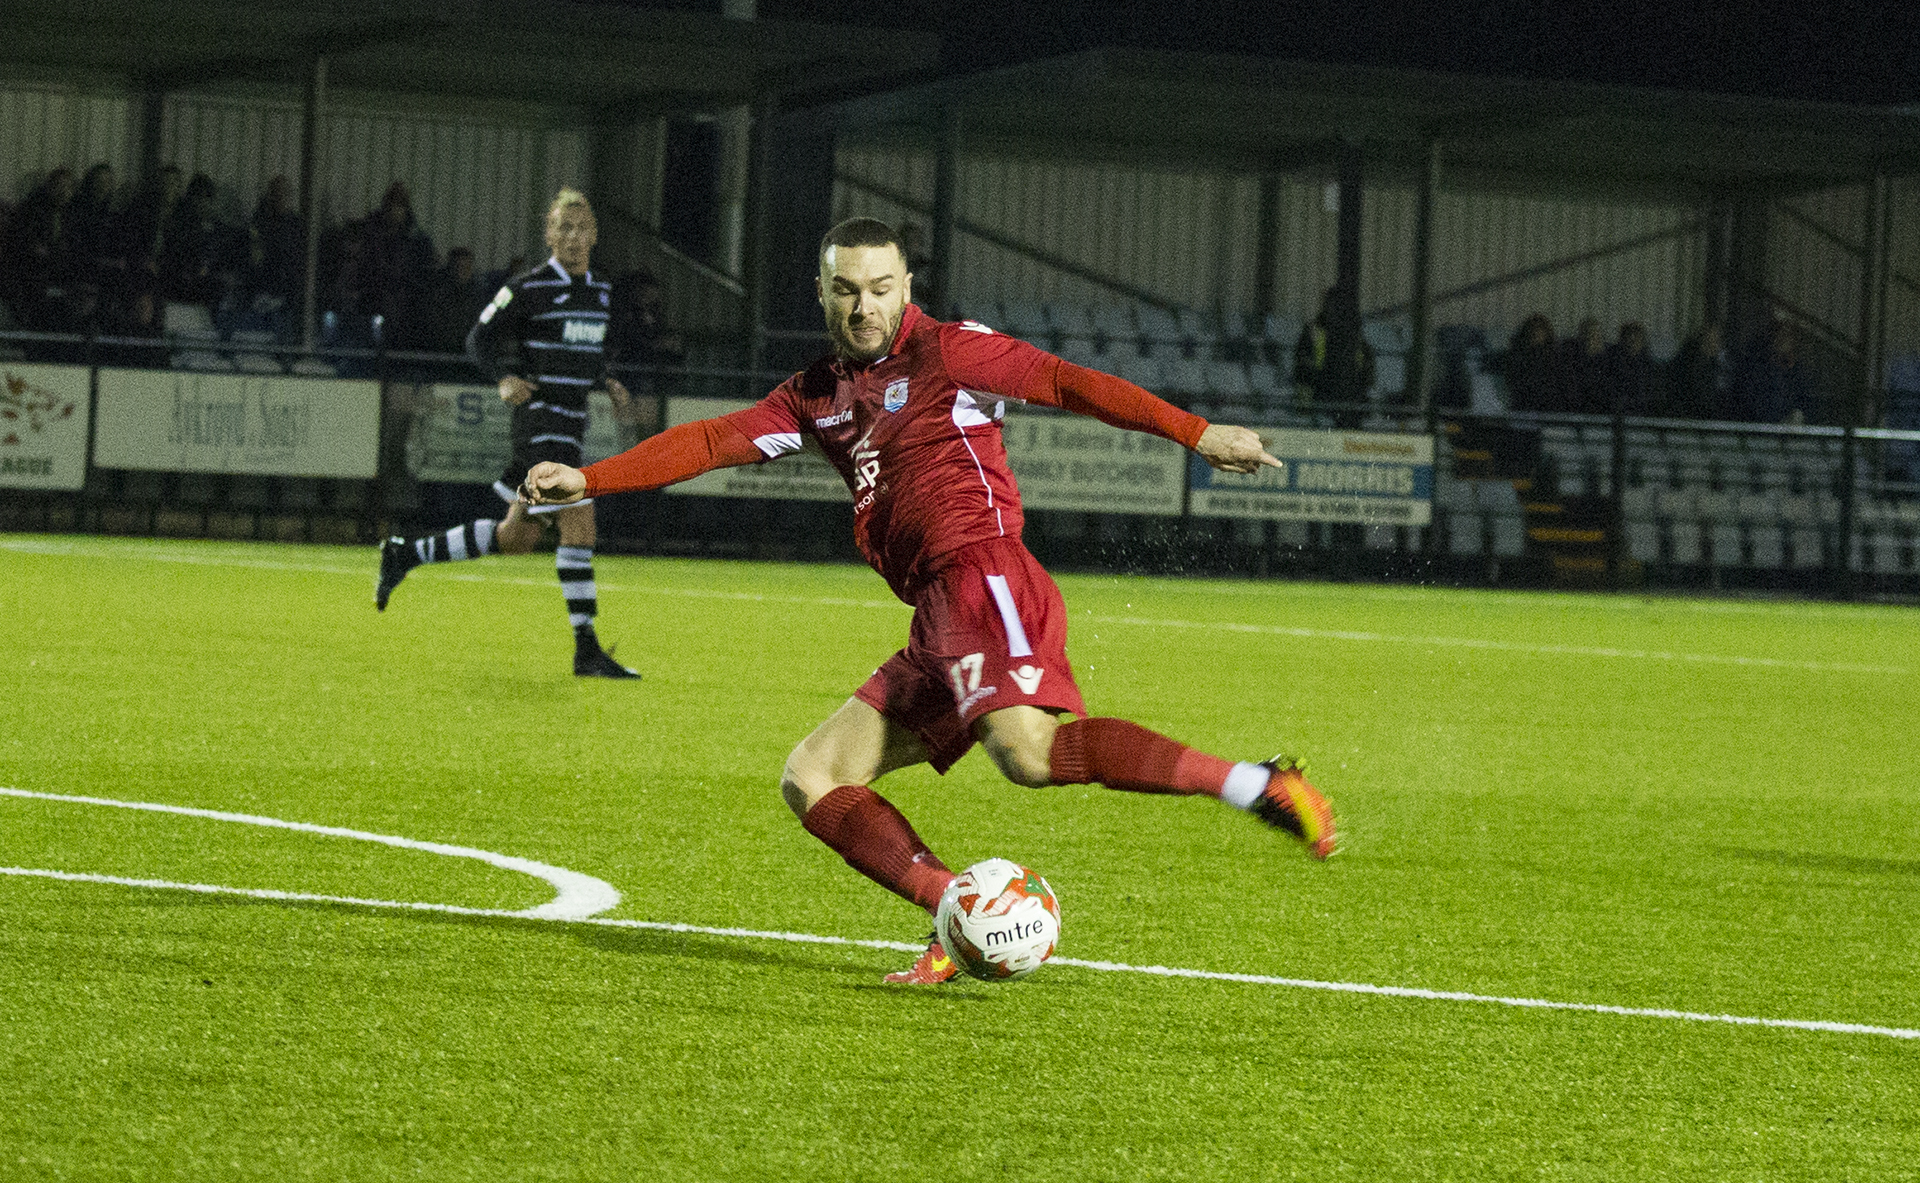 Late strike sees Nomads draw at Bala